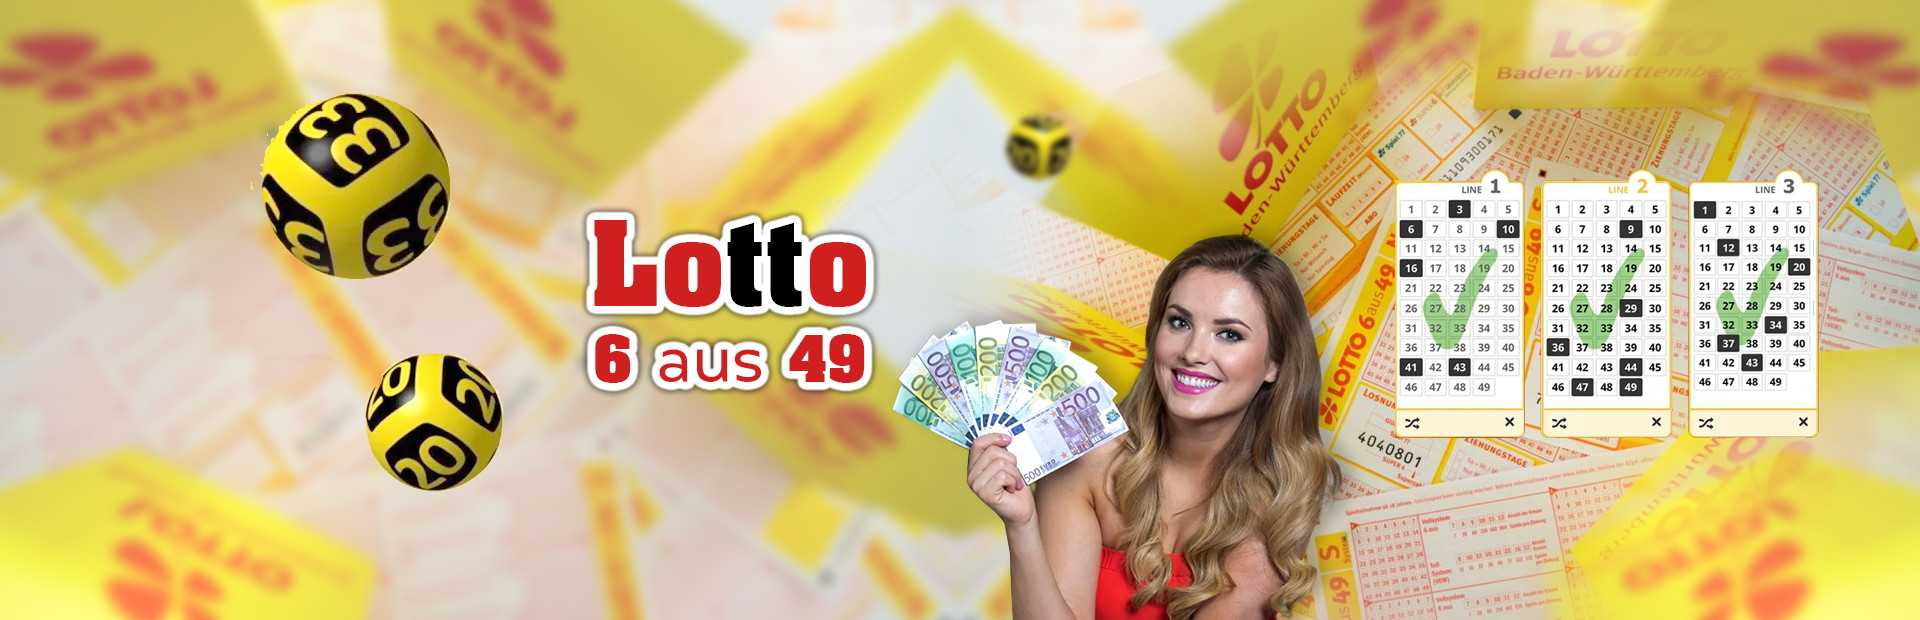 Australian lotteries - how to participate while in Russia